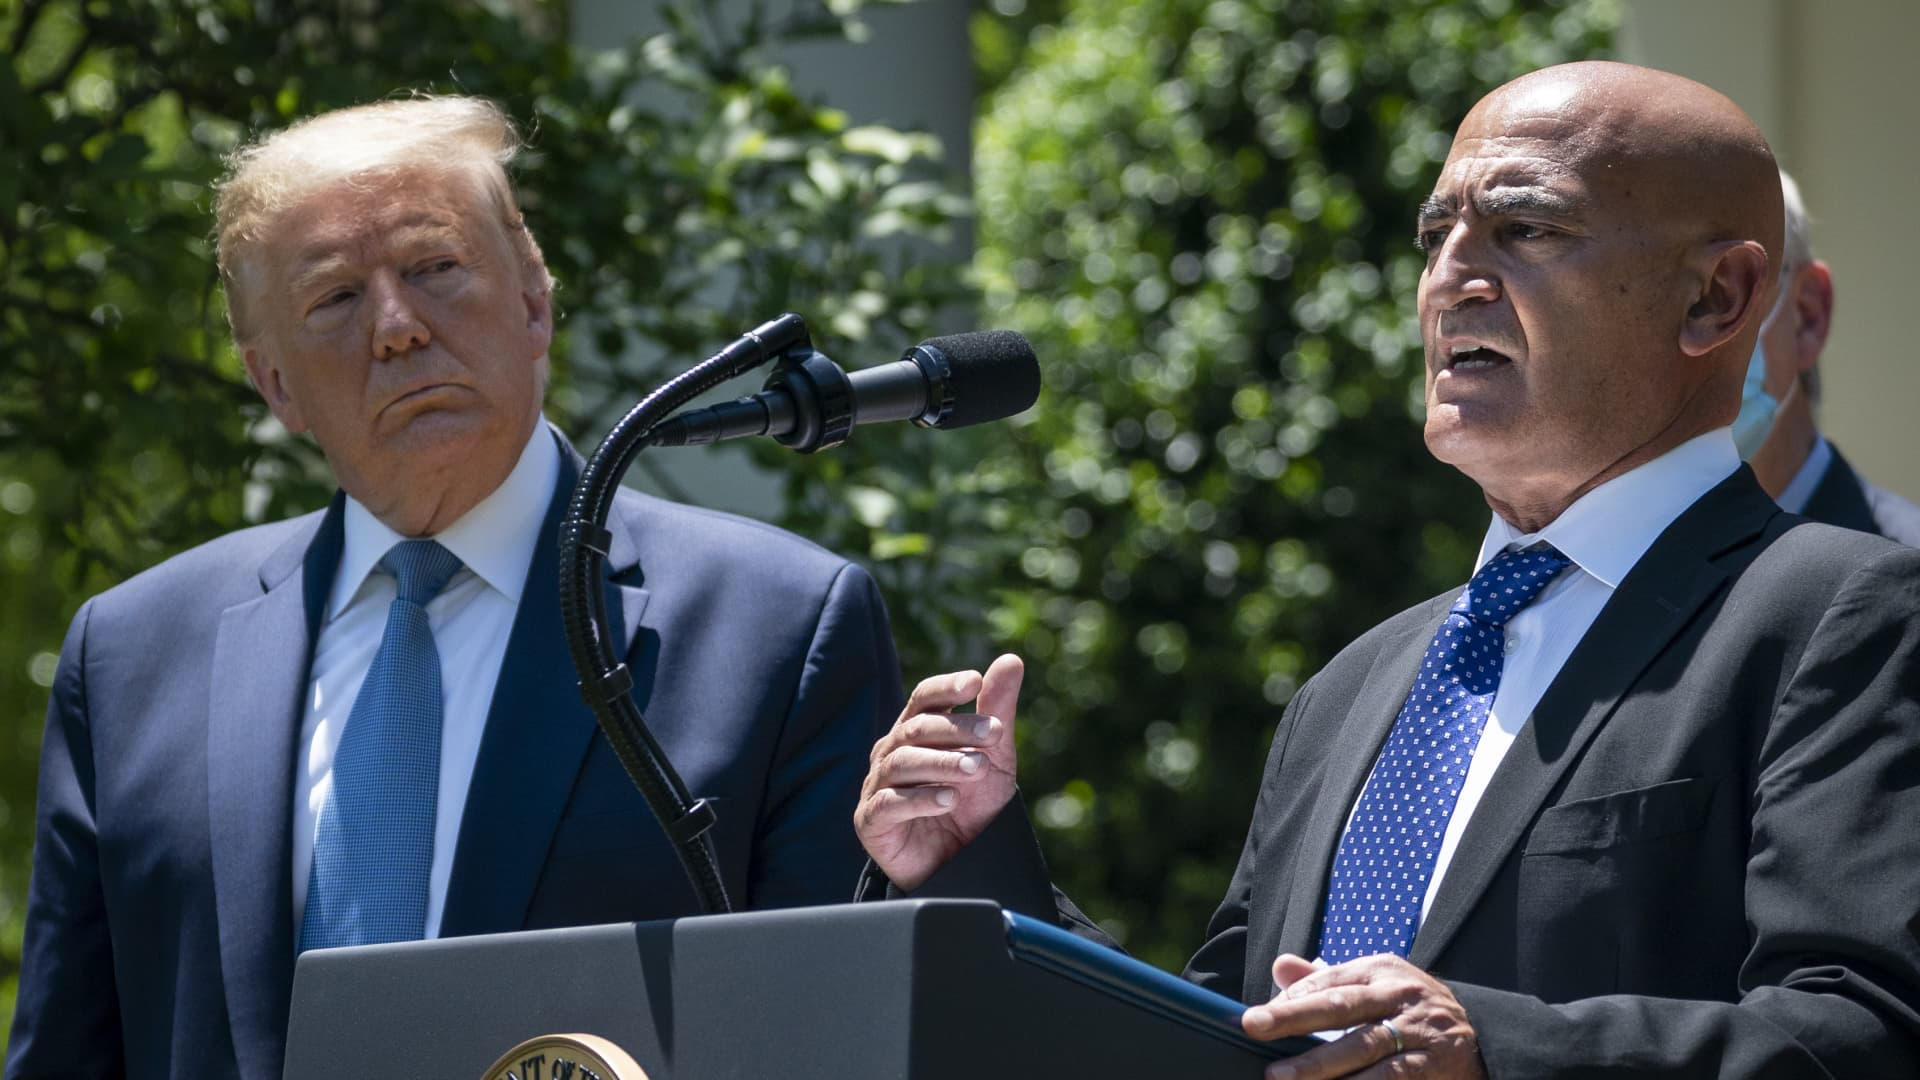 U.S. President Donald Trump listens as Moncef Slaoui, the former head of GlaxoSmithKlines vaccines division, speaks about coronavirus vaccine development in the Rose Garden of the White House on May 15, 2020 in Washington, DC.